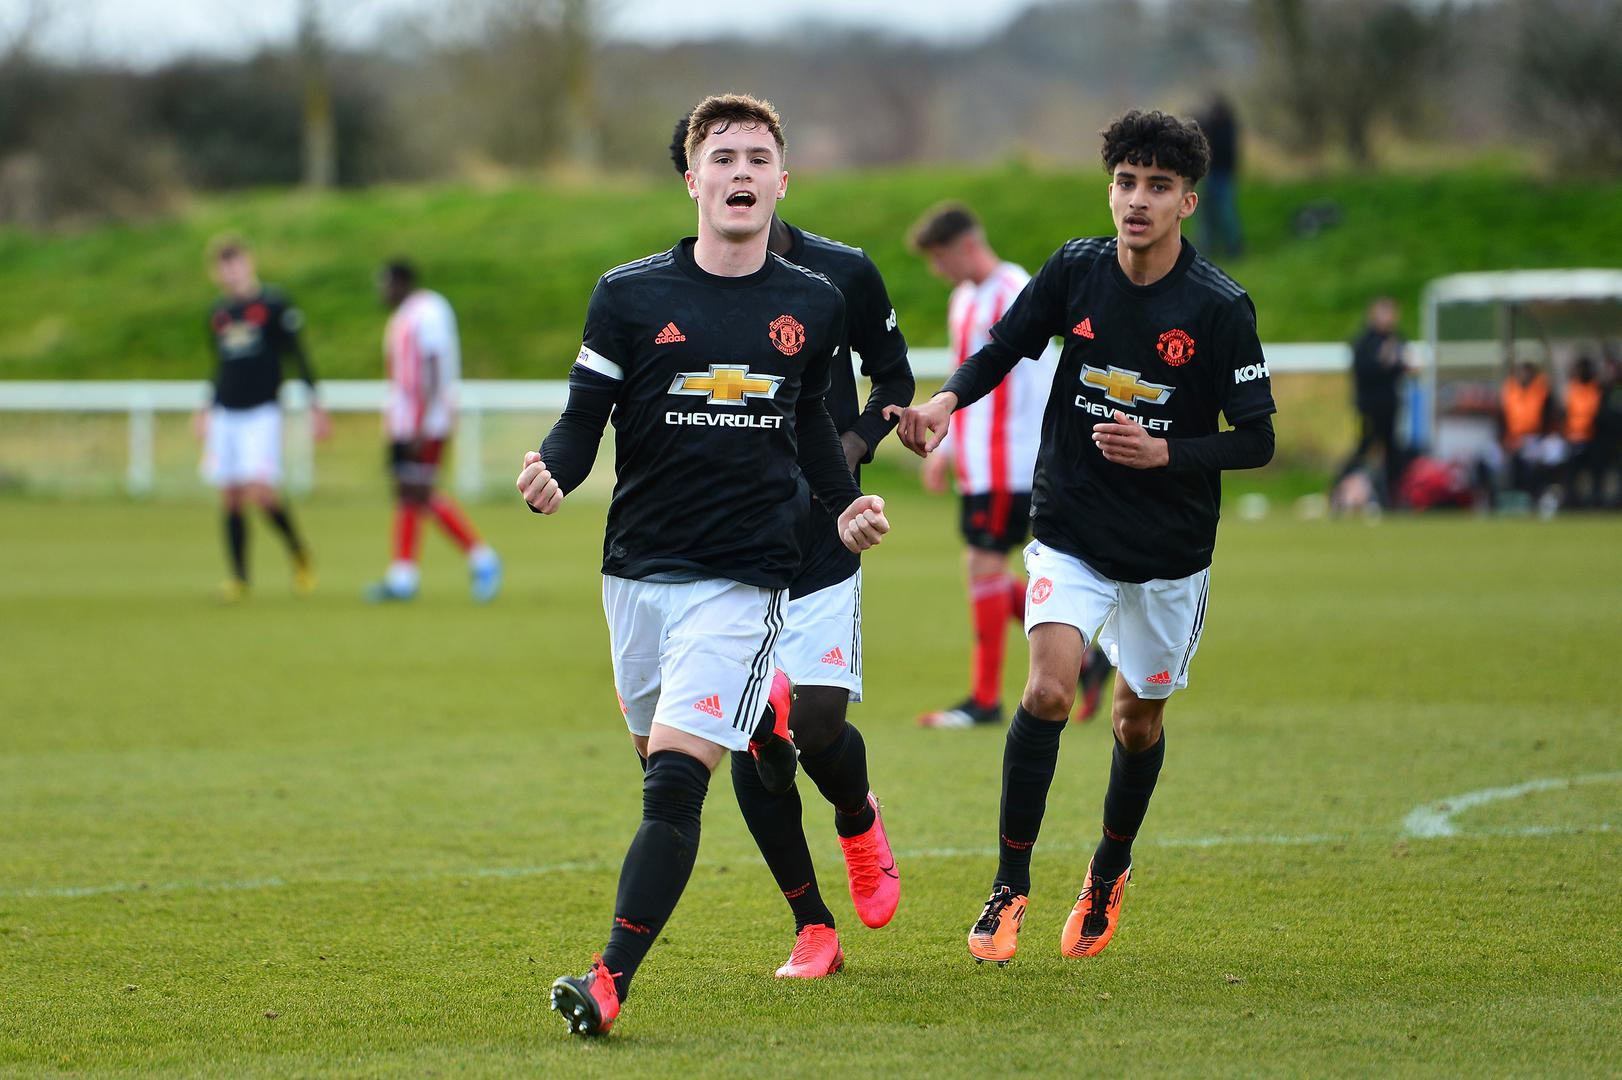 Charlie McCann celebrates after scoring for Manchester United Under-18s against Sunderland